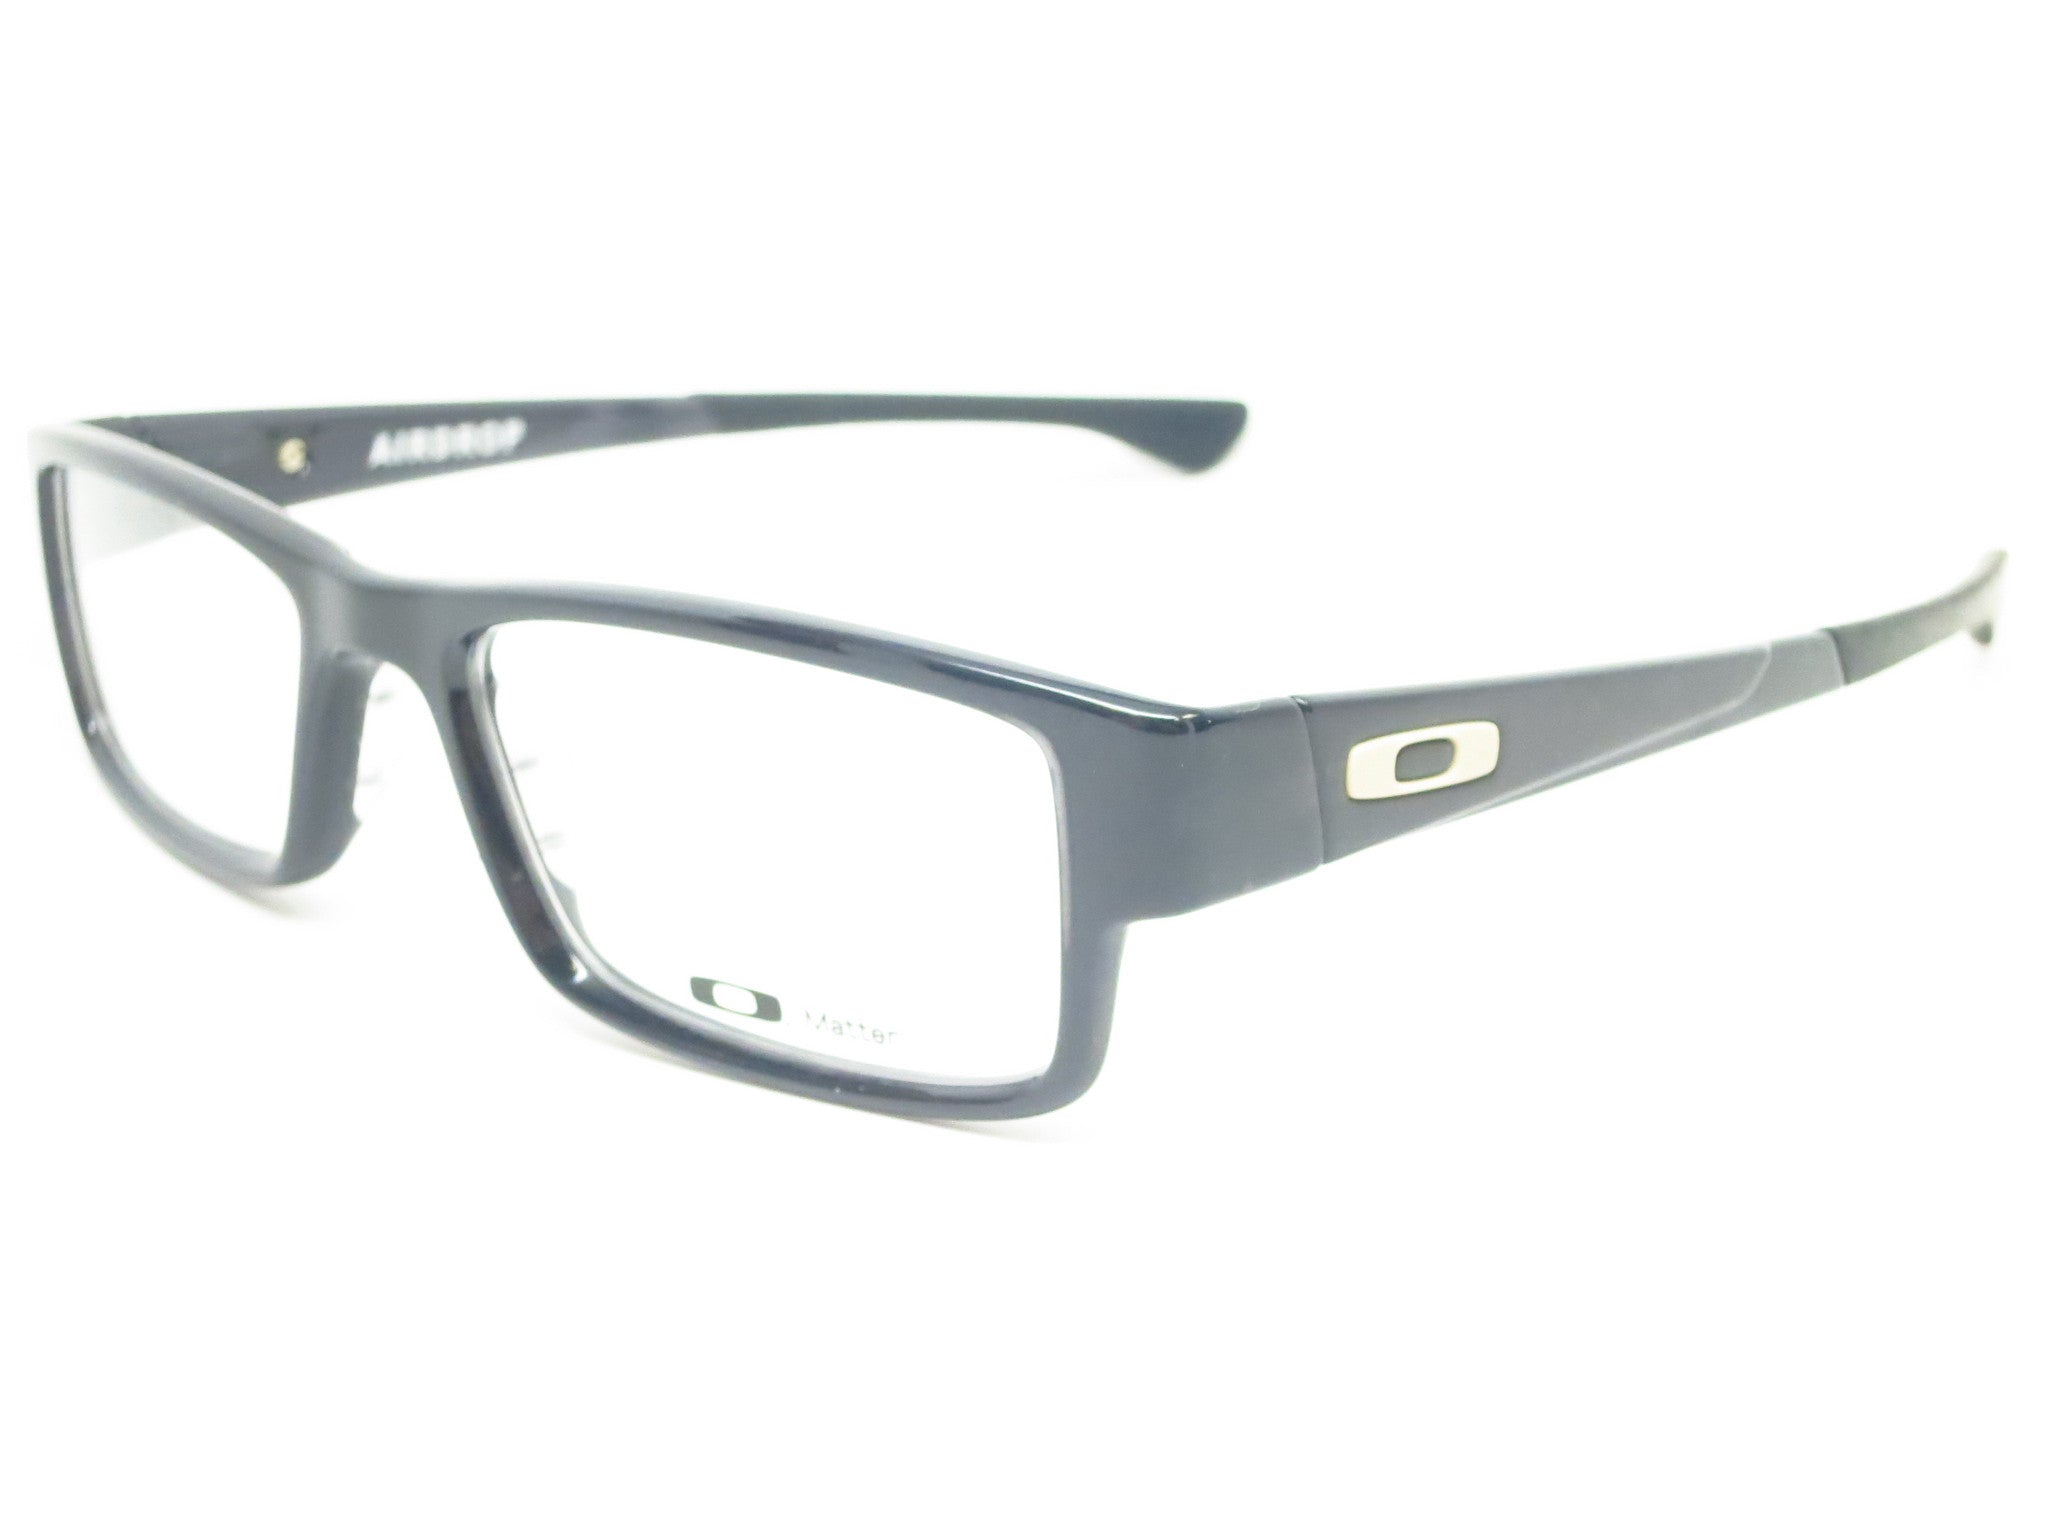 14004ba0fdc Copy of Oakley Airdrop OX8046-0255 Black Ink Eyeglasses - Eye Heart Shades  - Oakley ...